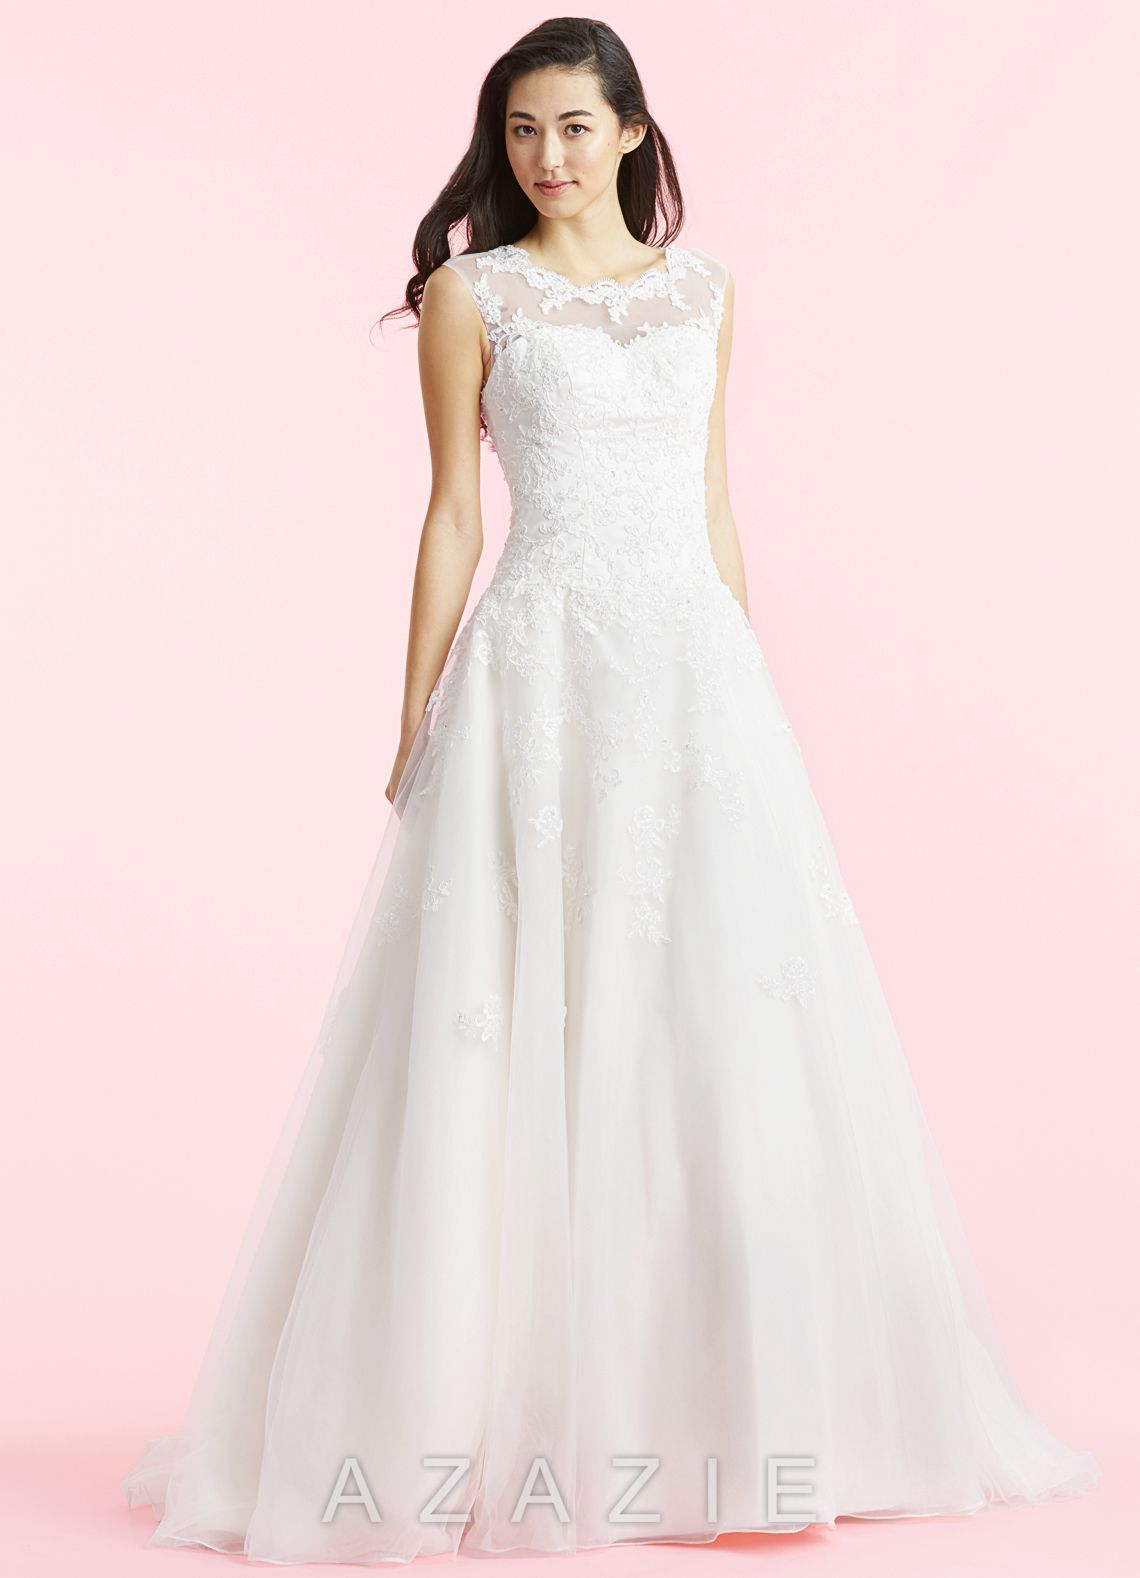 8c4f846819 Shop Azazie Bridal Gown - Fantasia BG in Organza. Find the perfect wedding  dress for your big day. Available in regular or plus sizes 2-26W at Azazie.